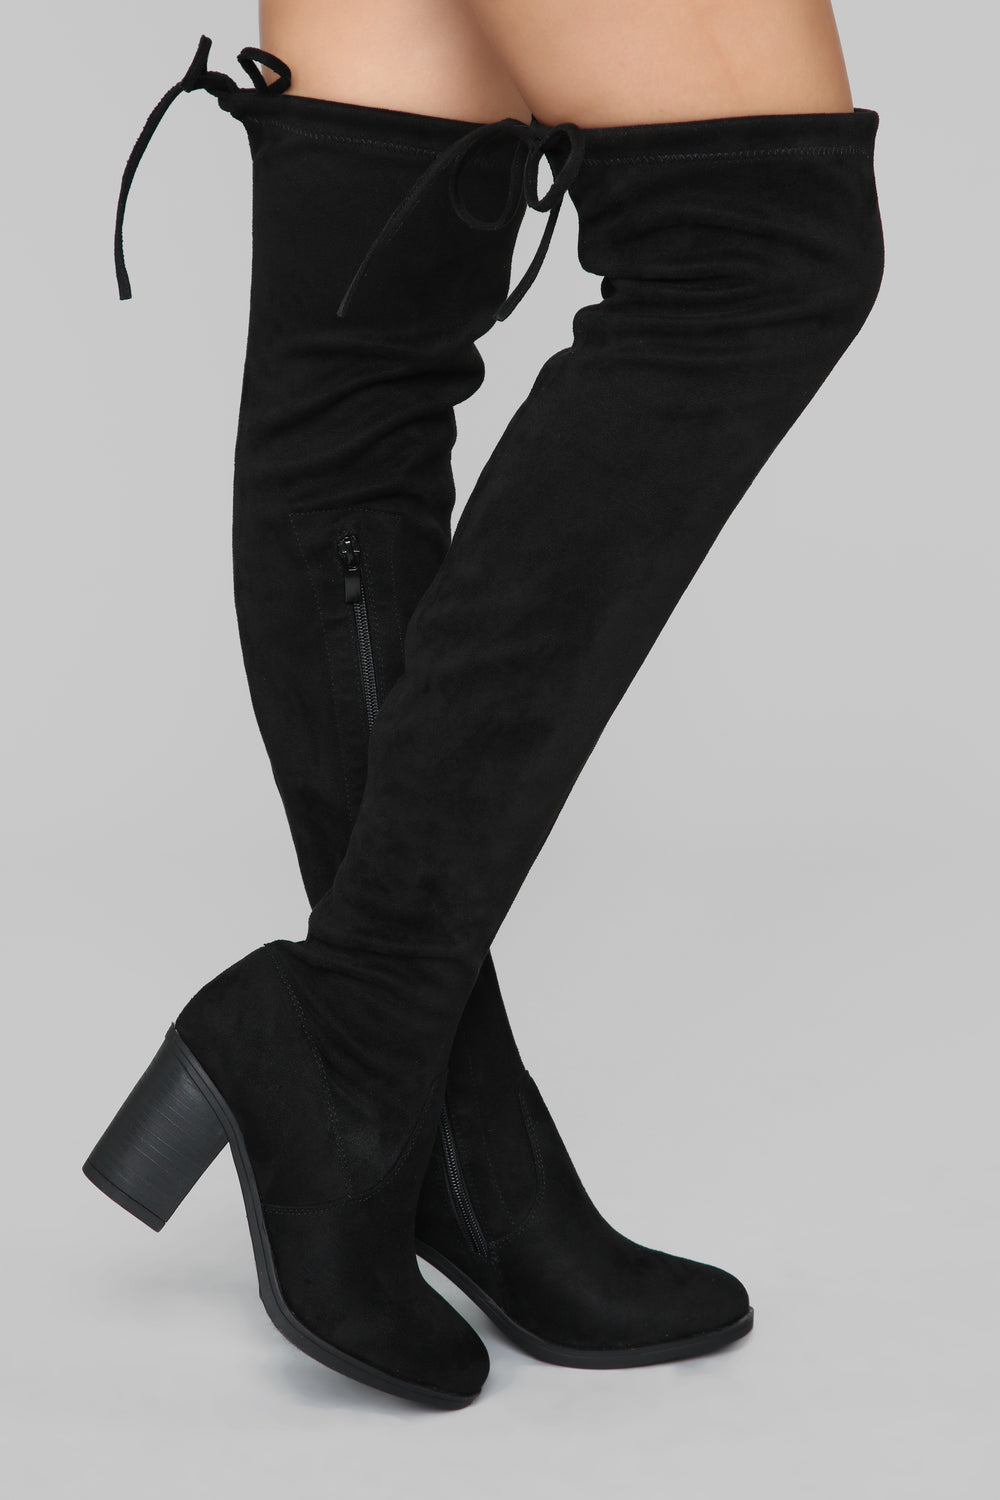 To Be Or Not Be Heeled Boot - Black